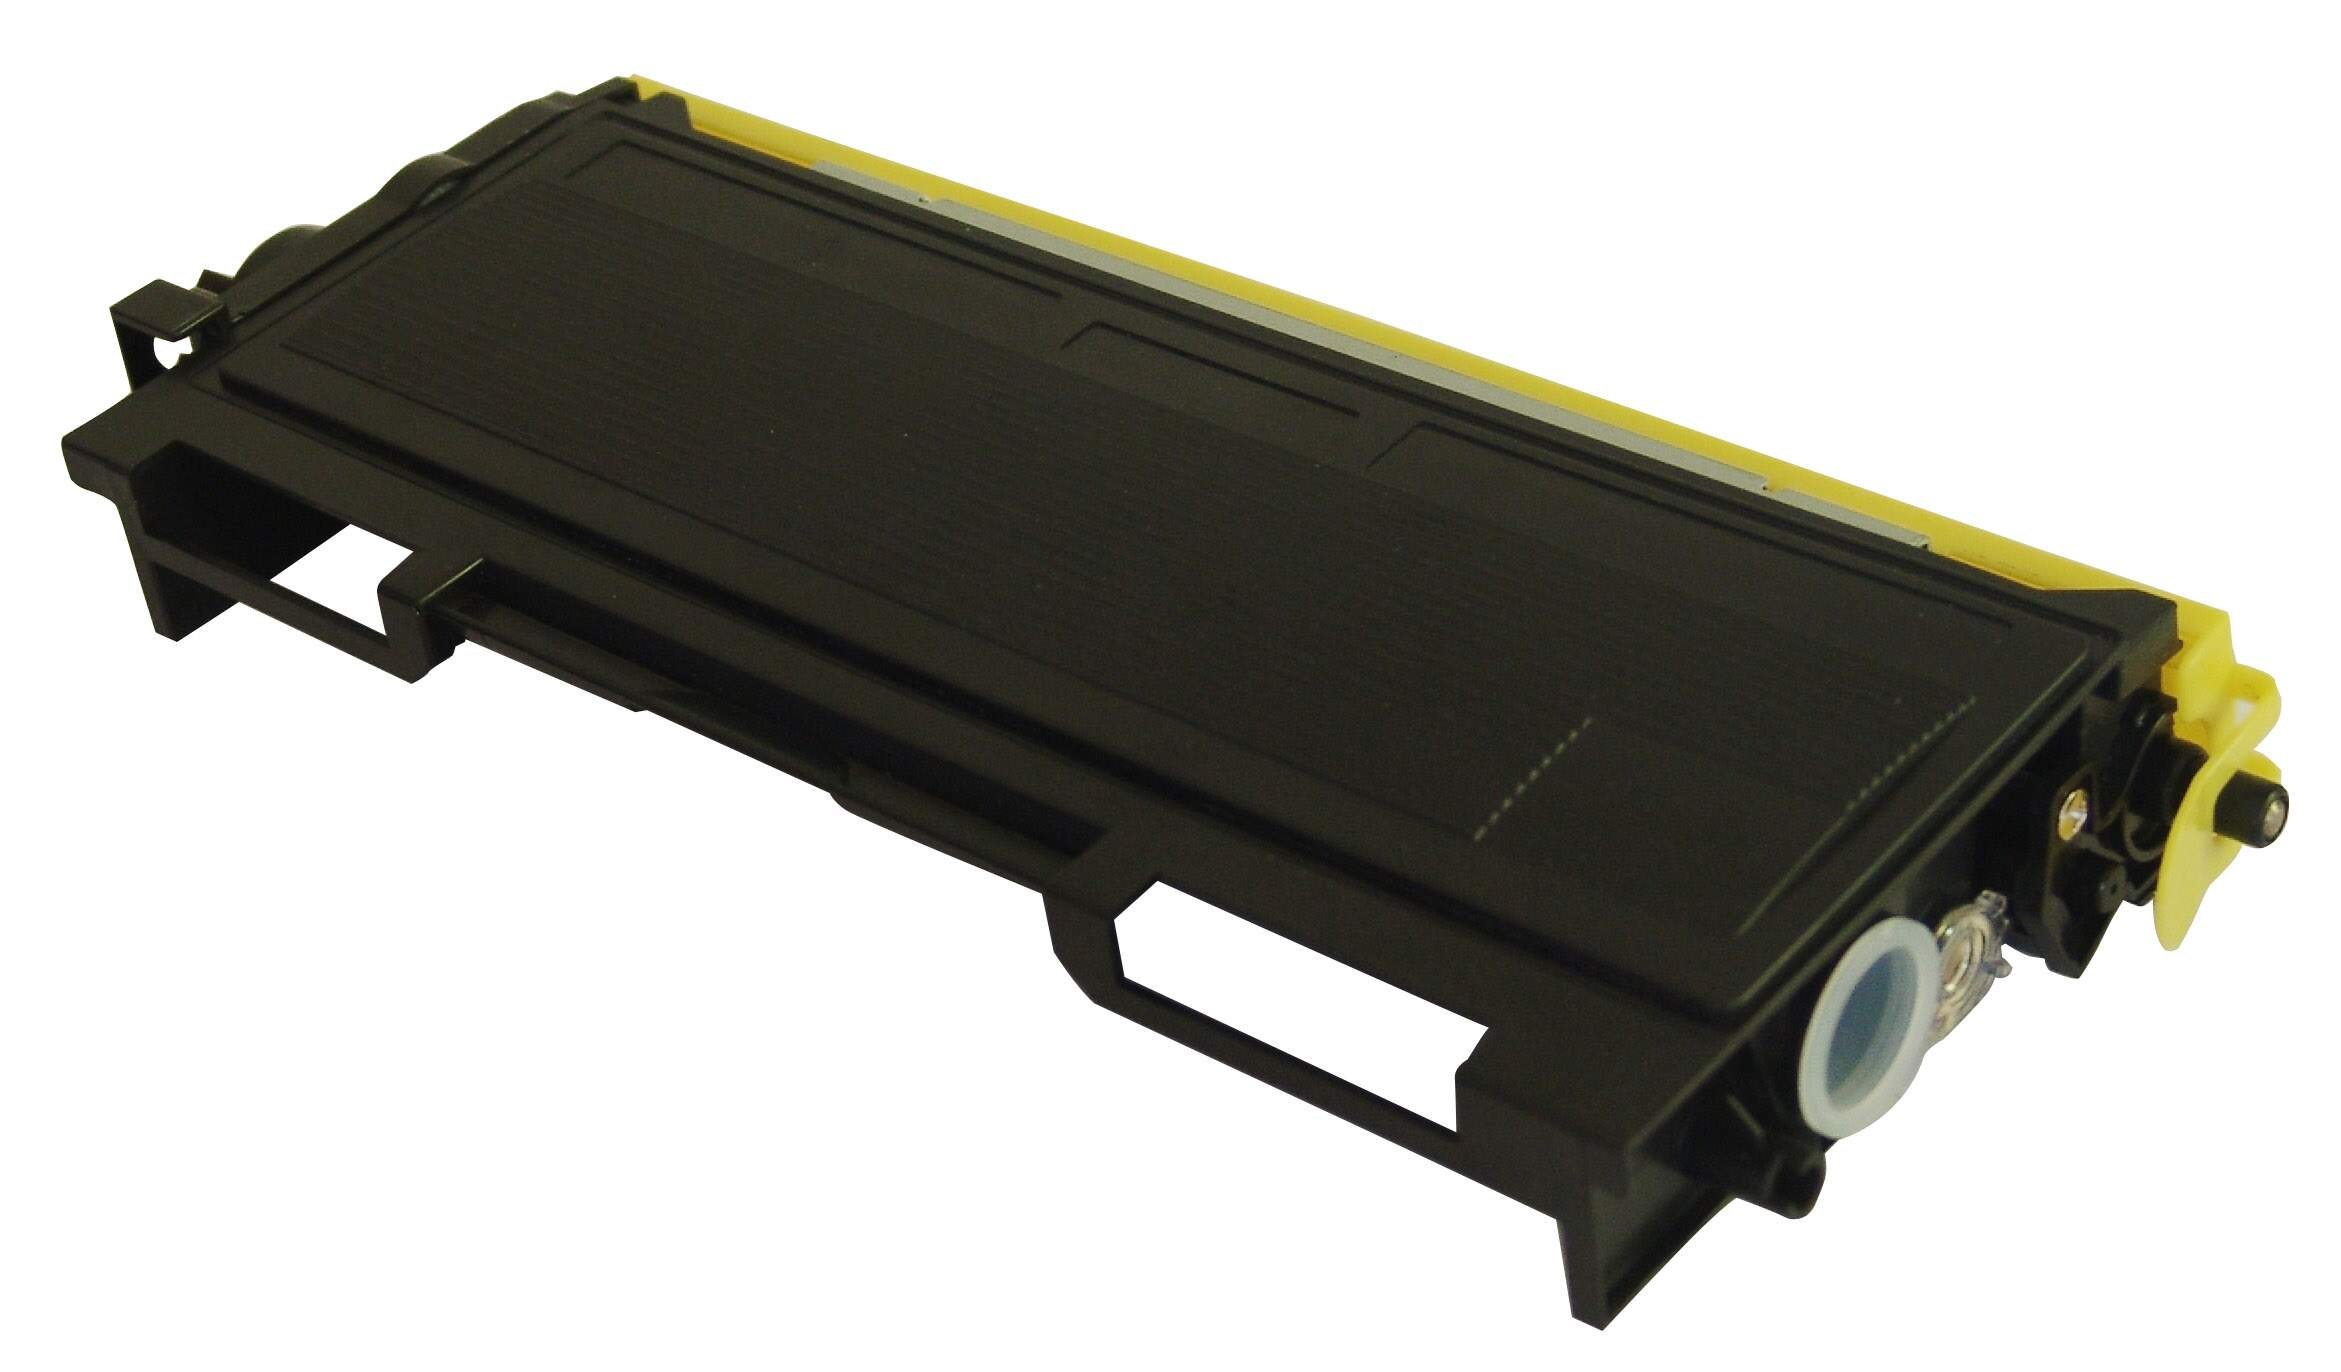 Toner Brother TN350 DCP7010 HL2040 HL2070N MFC7220 MFC7225N Intellifax-2820 Compatível 2.5k Cxa 1 Cartucho, 2500 Cópias